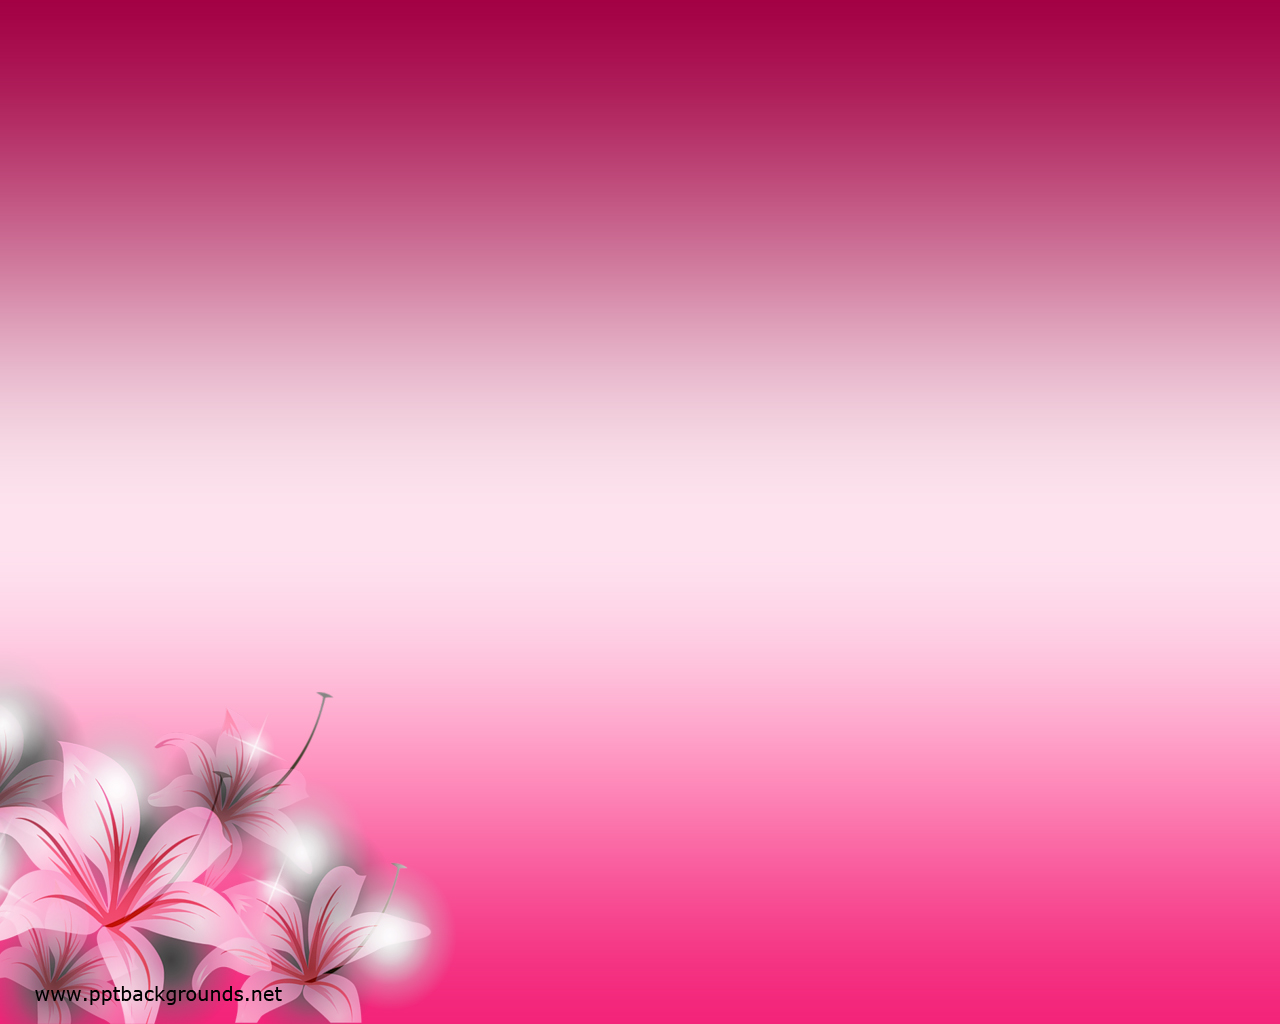 Free pink flowers backgrounds for powerpoint flower ppt templates hq free pink flowers backgrounds for powerpoint flower ppt templates toneelgroepblik Images